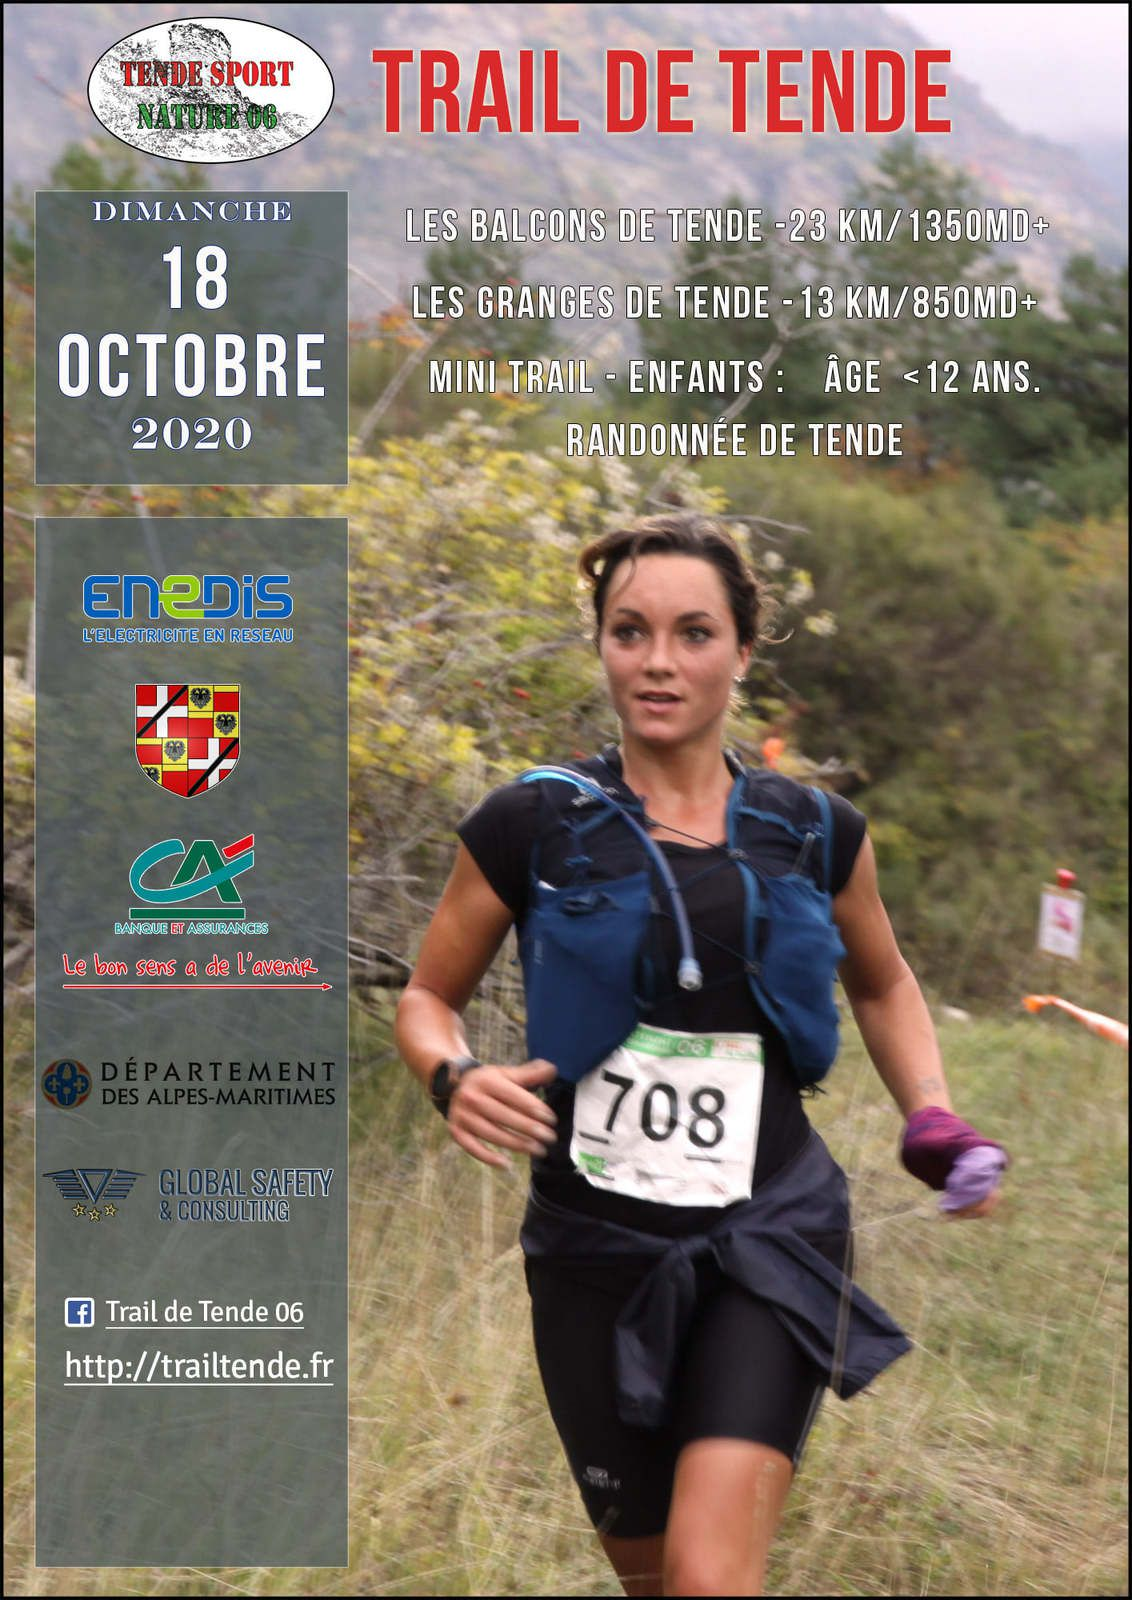 TENDE TRAILS 18 OCTOBRE